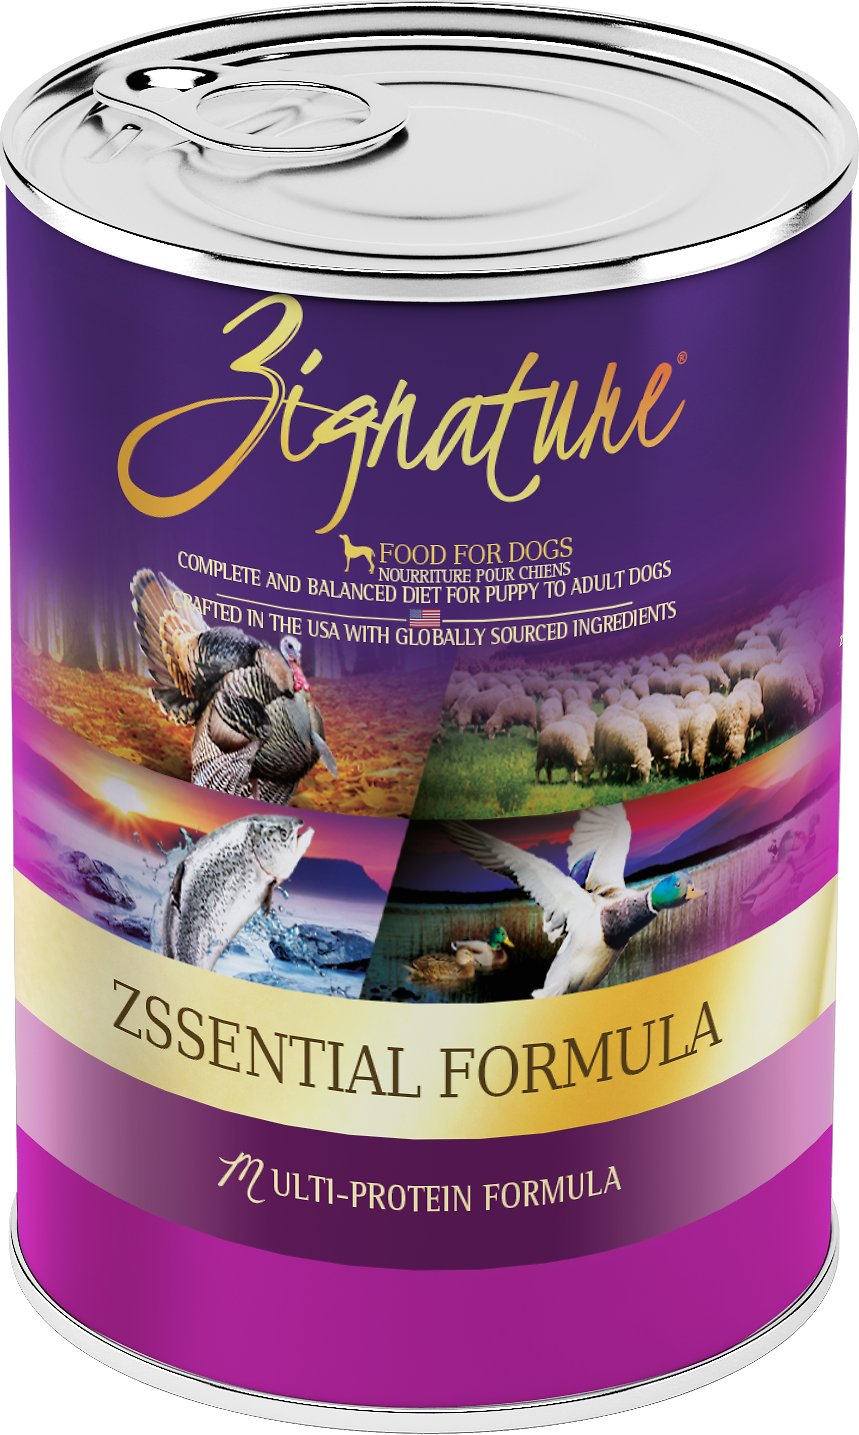 Best Canned Dog Food >> Zignature Zssential Multi Protein Formula Grain Free Canned Dog Food 13 Oz Case Of 12